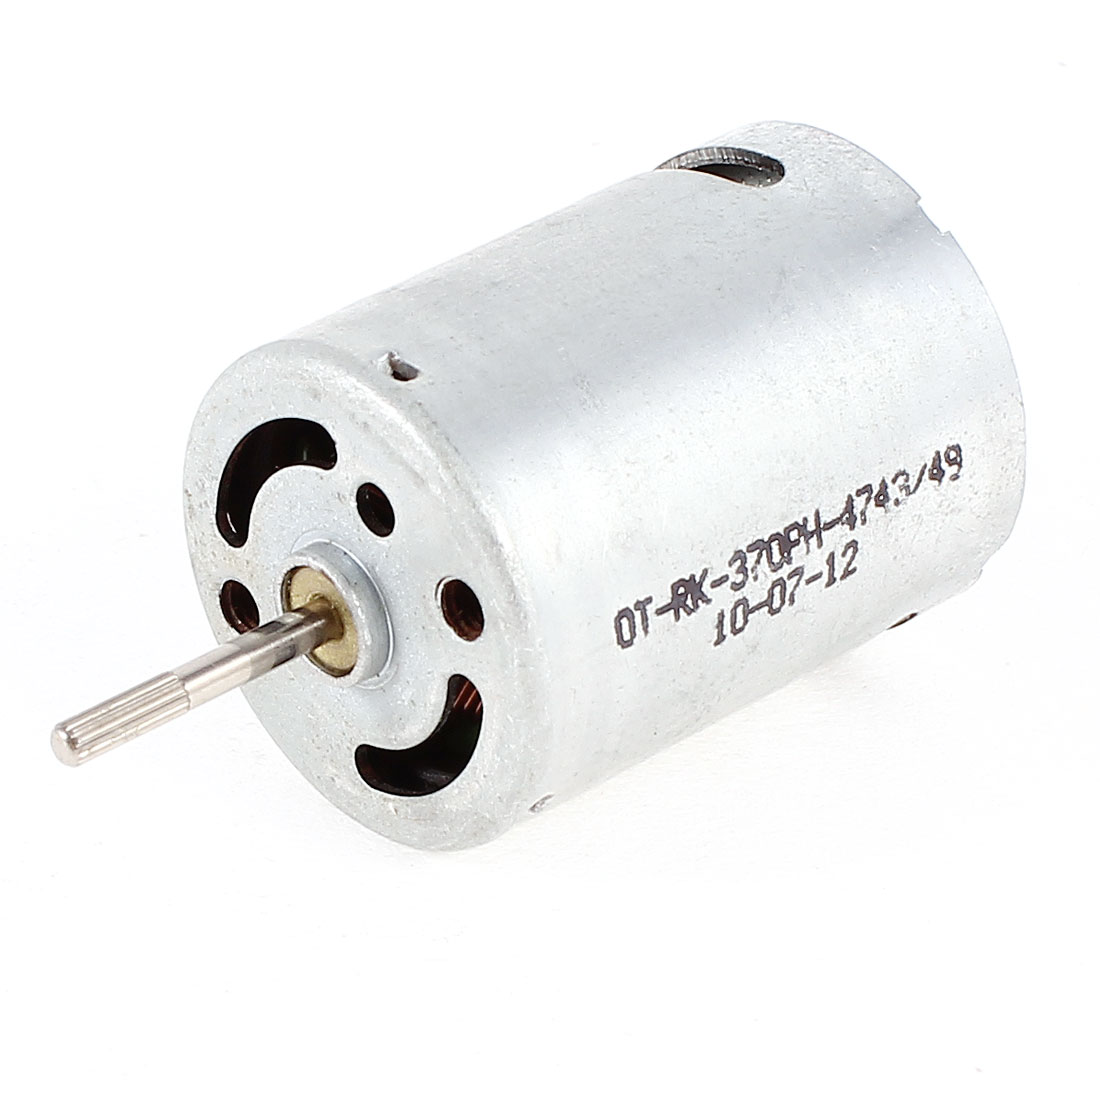 DC 6V 16000RPM High Speed Cylinder Shape Mini Carbon Brush Motor for RC Airplane